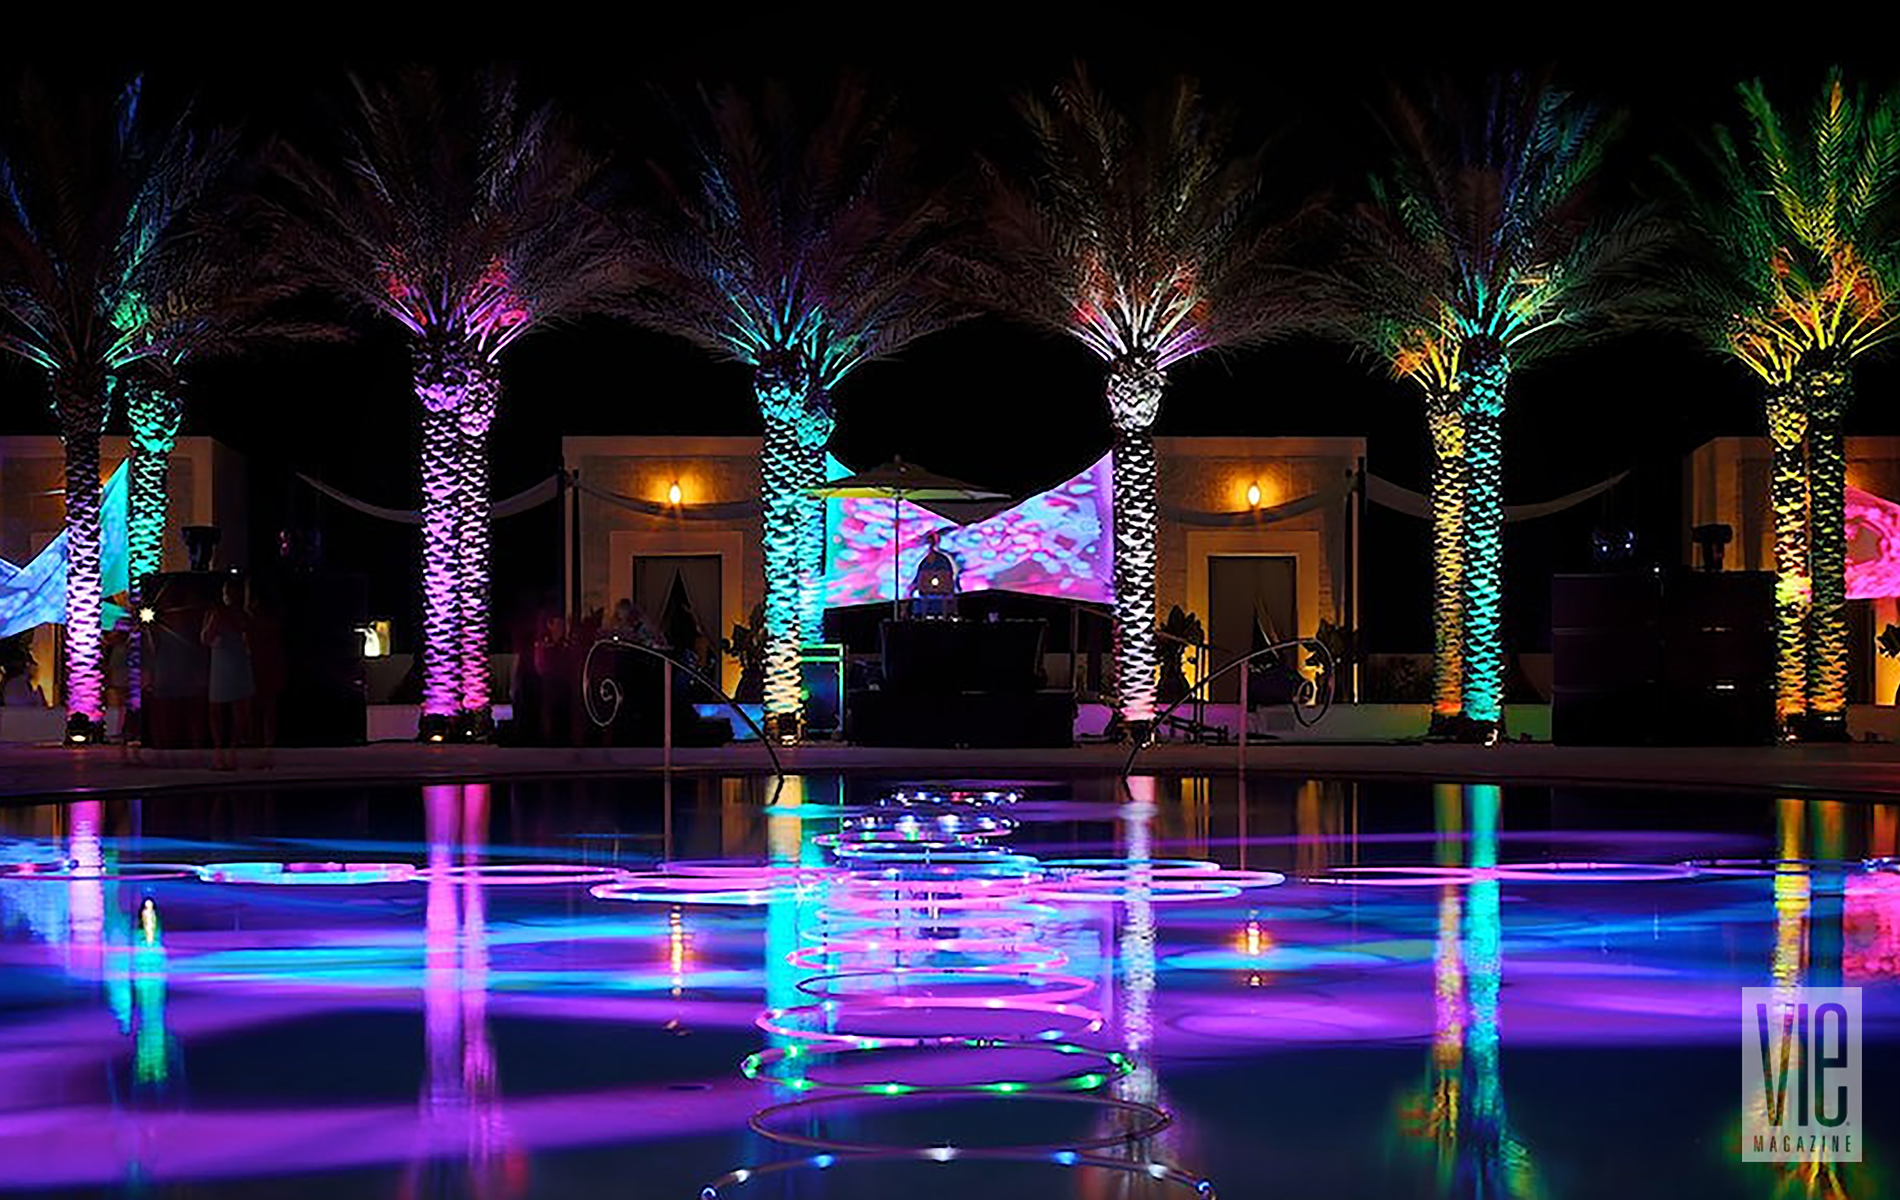 Digital Graffiti 2014 at Caliza Pool in Alys Beach Florida